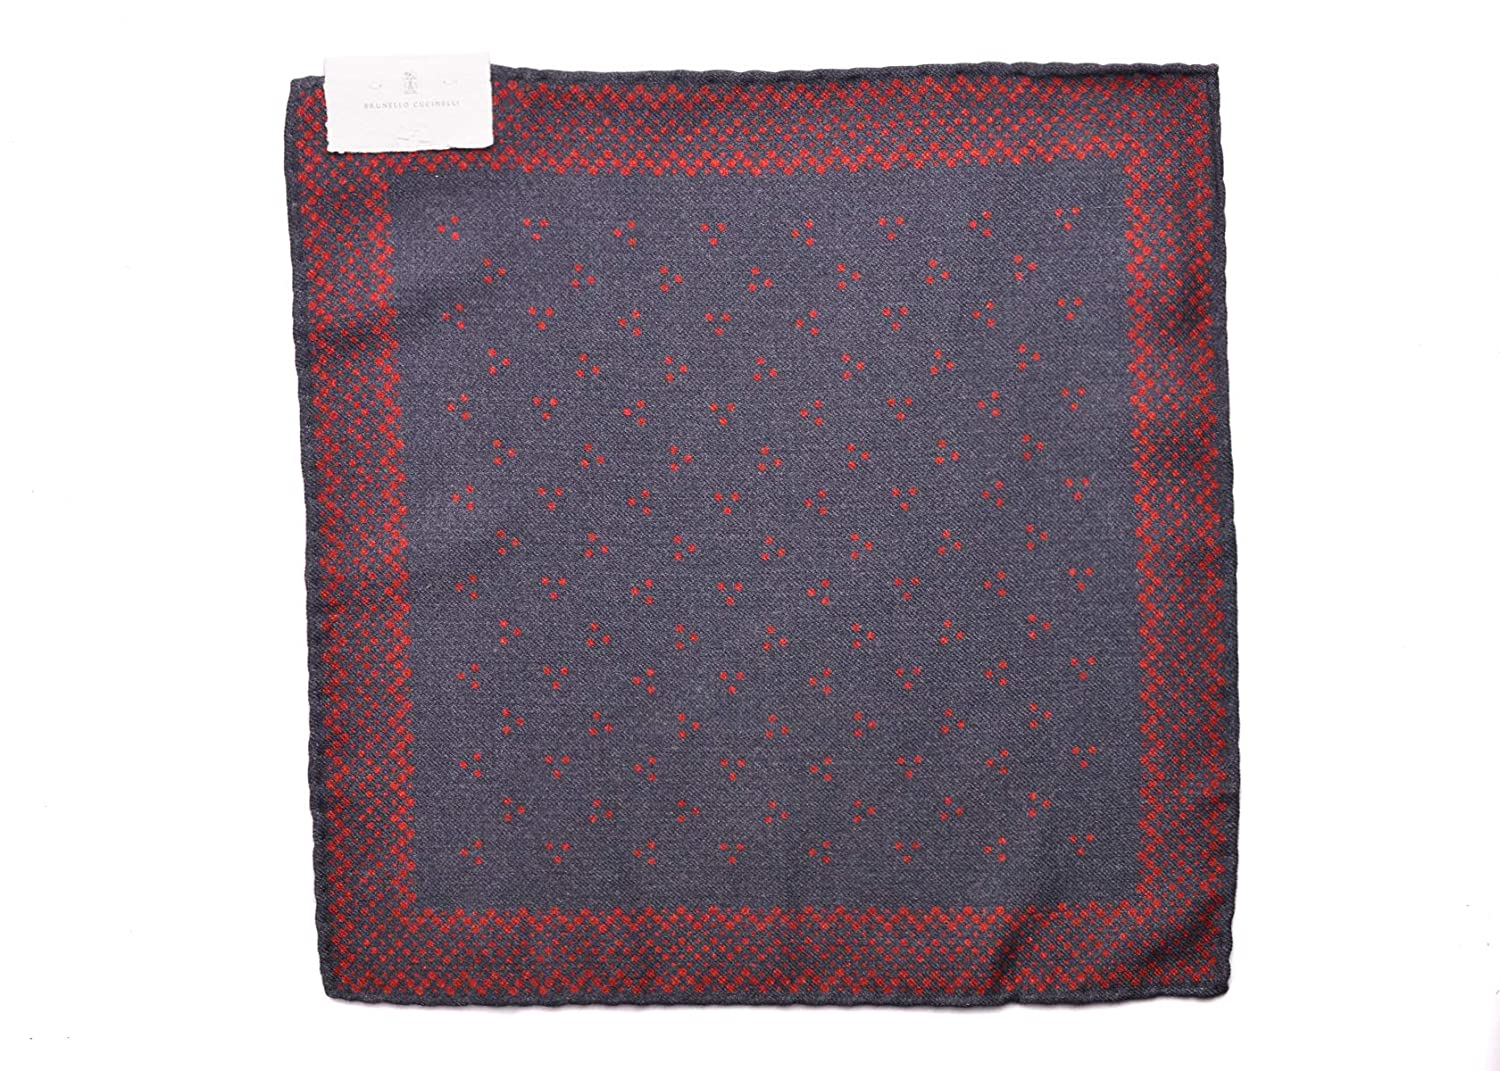 Brunello Cucinelli Mens Red Black Dotted Pocket Square One Size~Retail$225